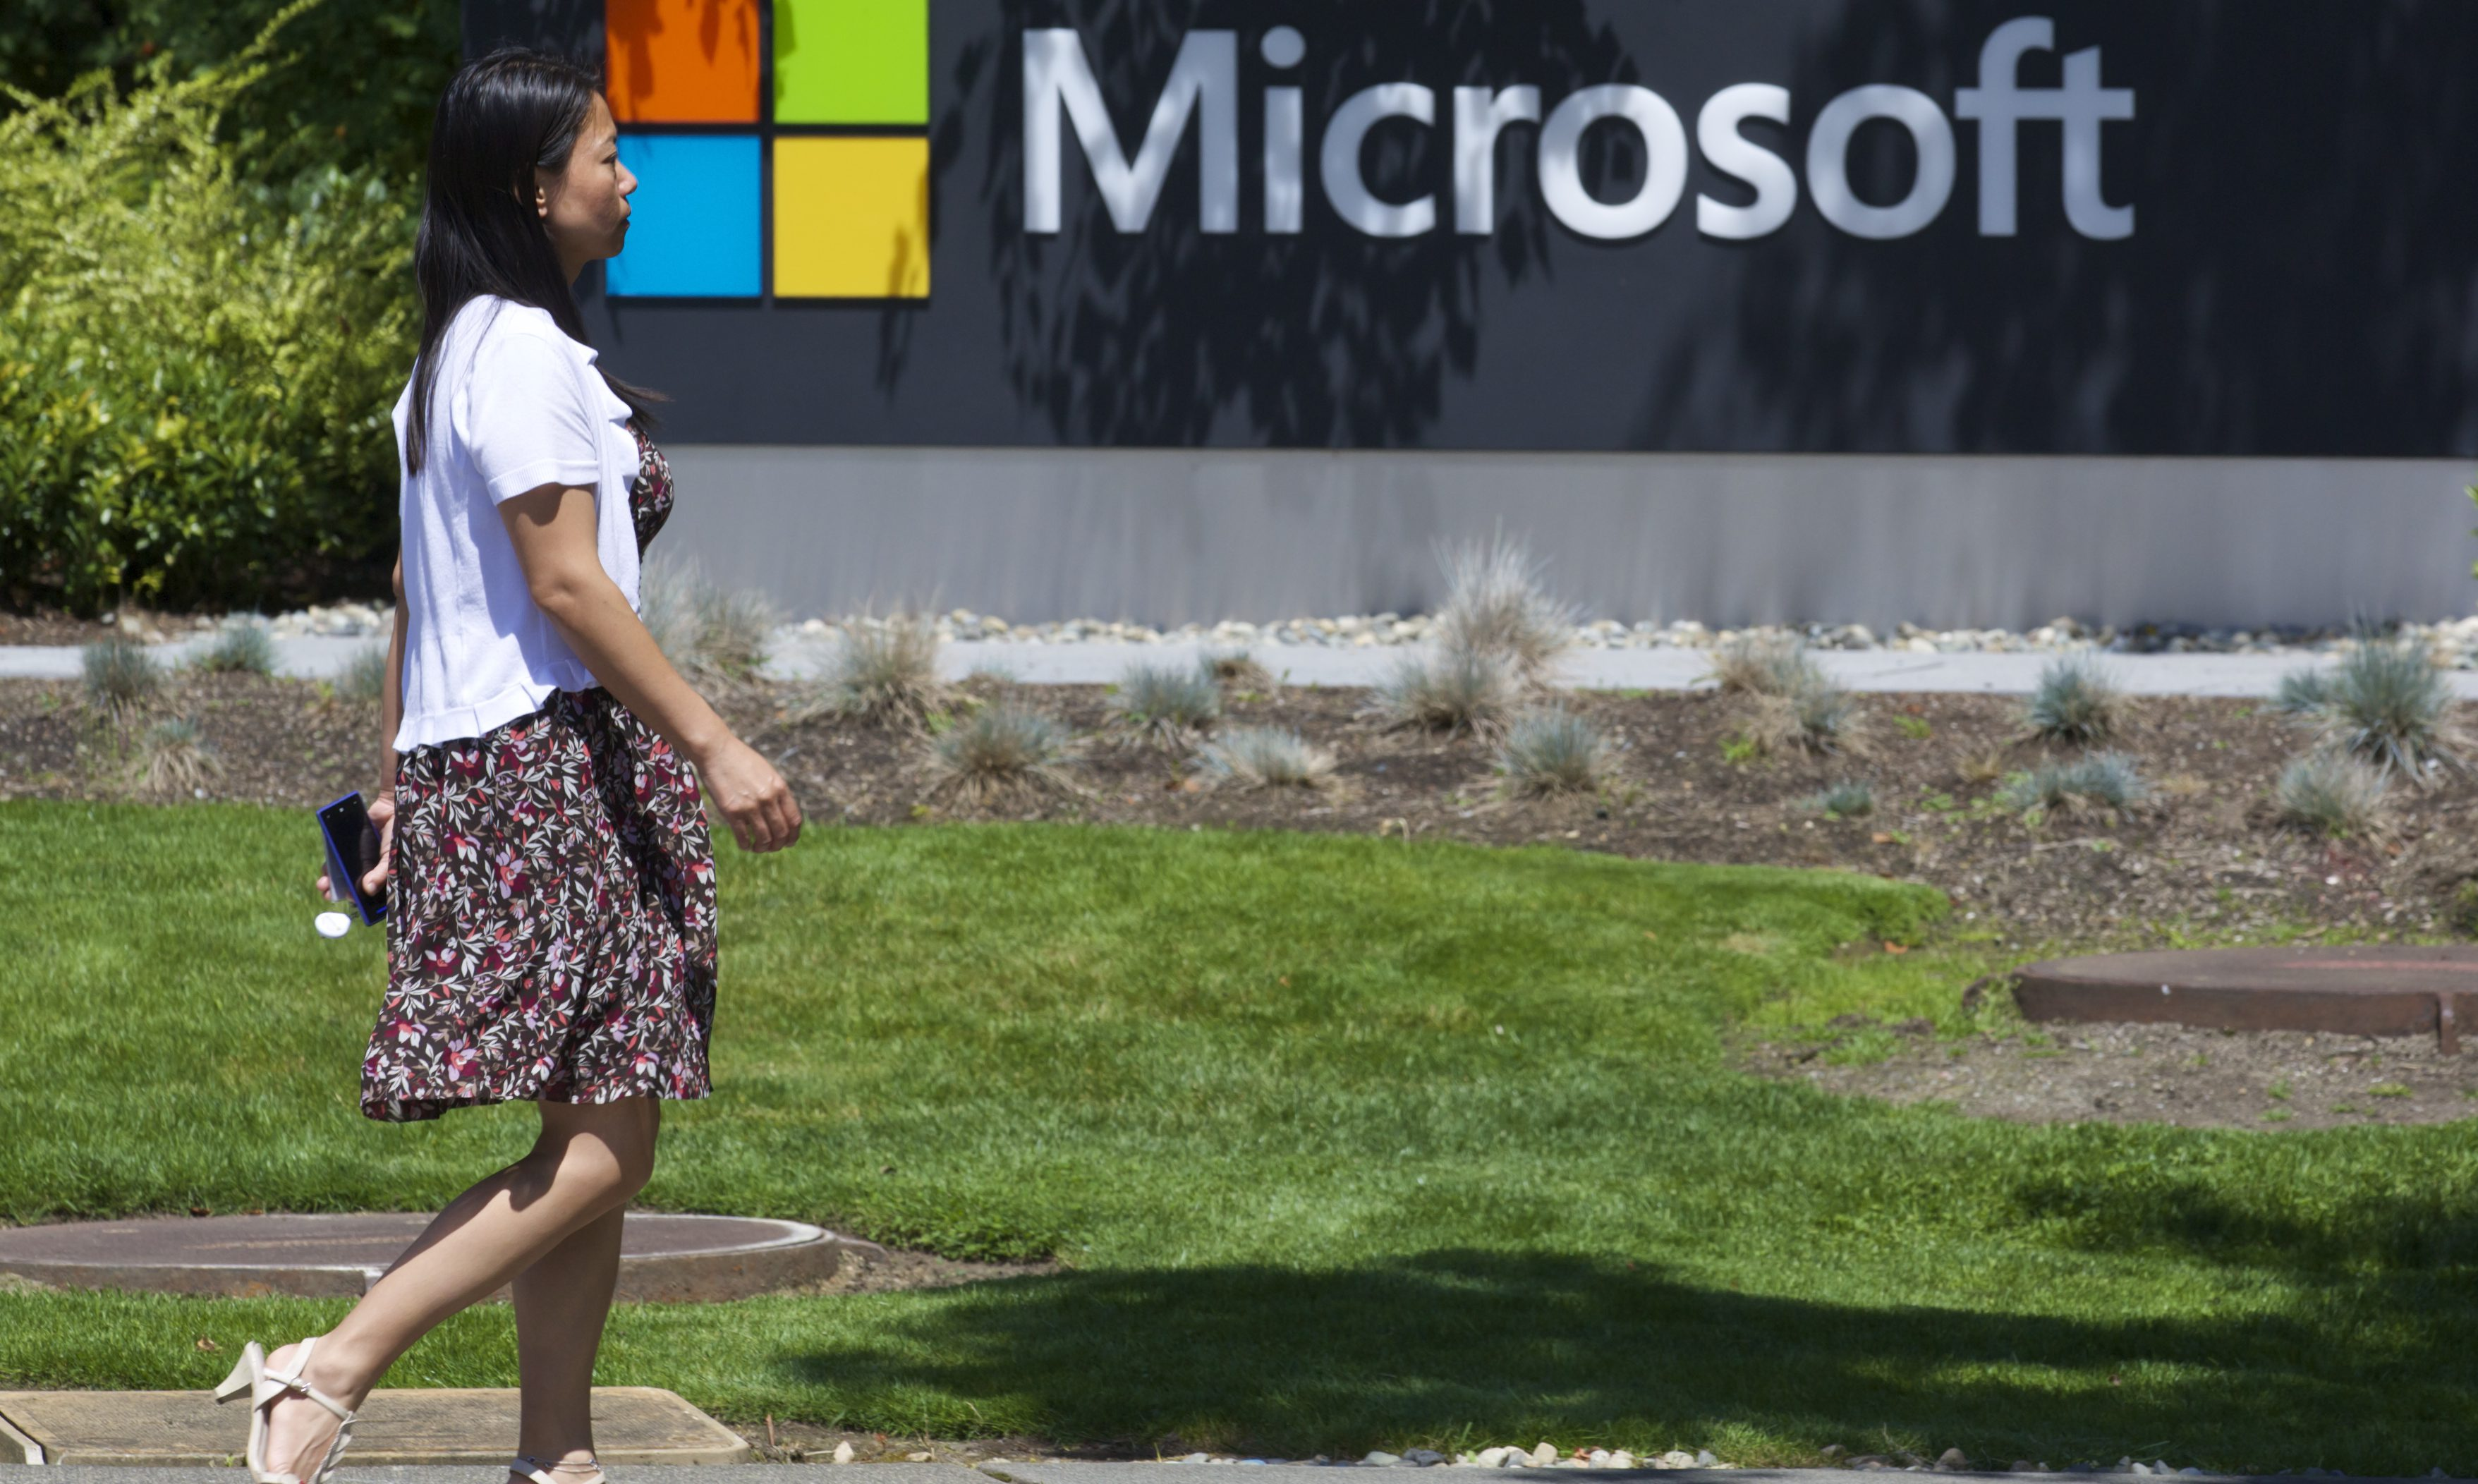 Microsoft is ending arbitration clauses in contracts